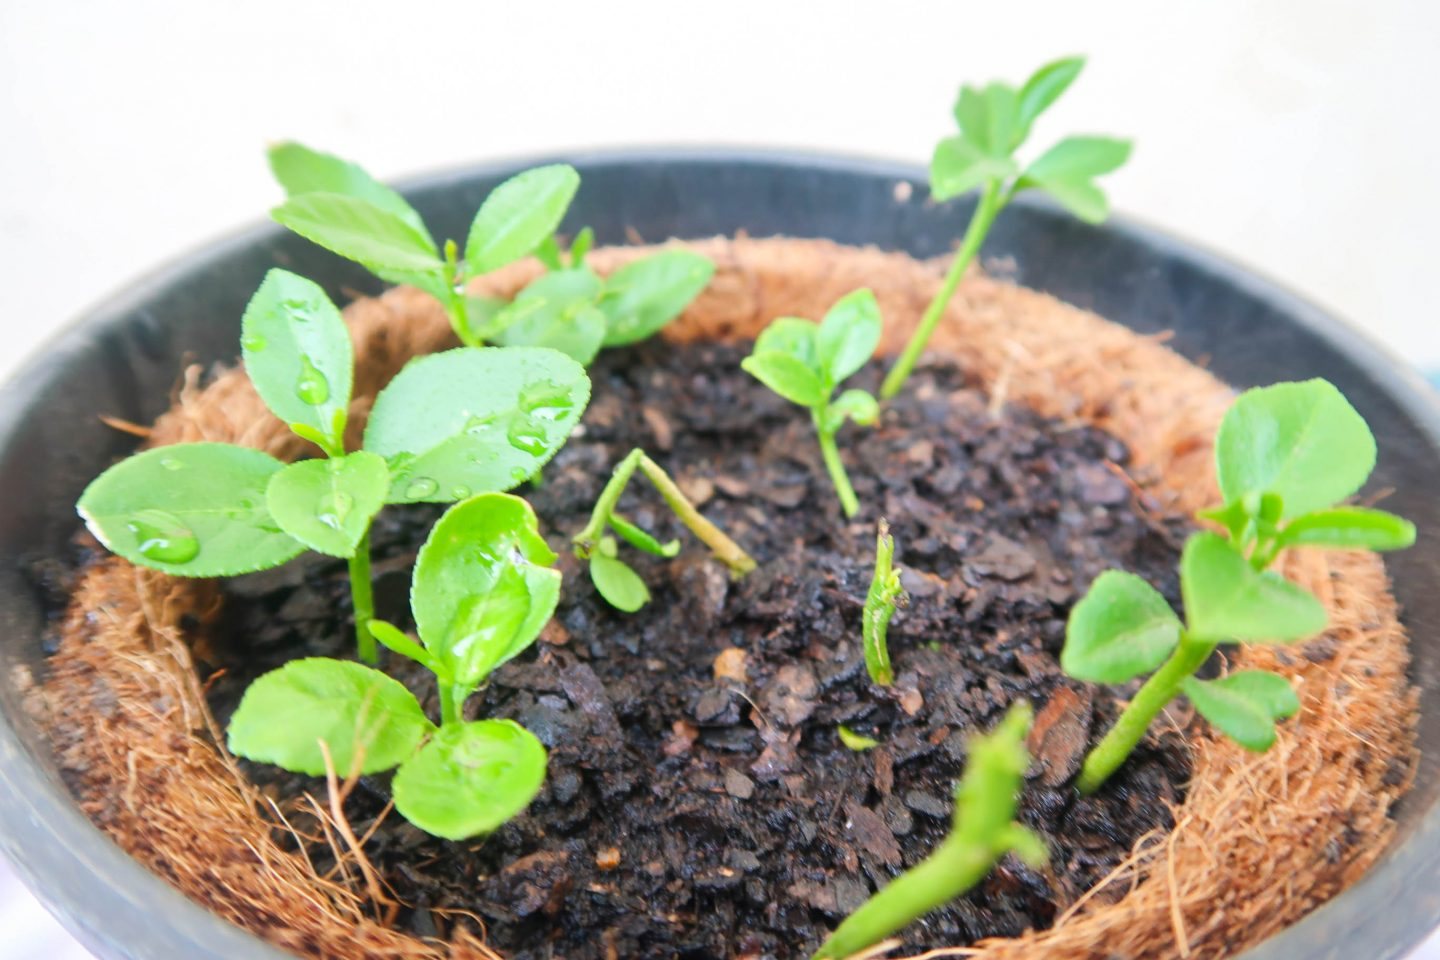 growing lemons from seeds